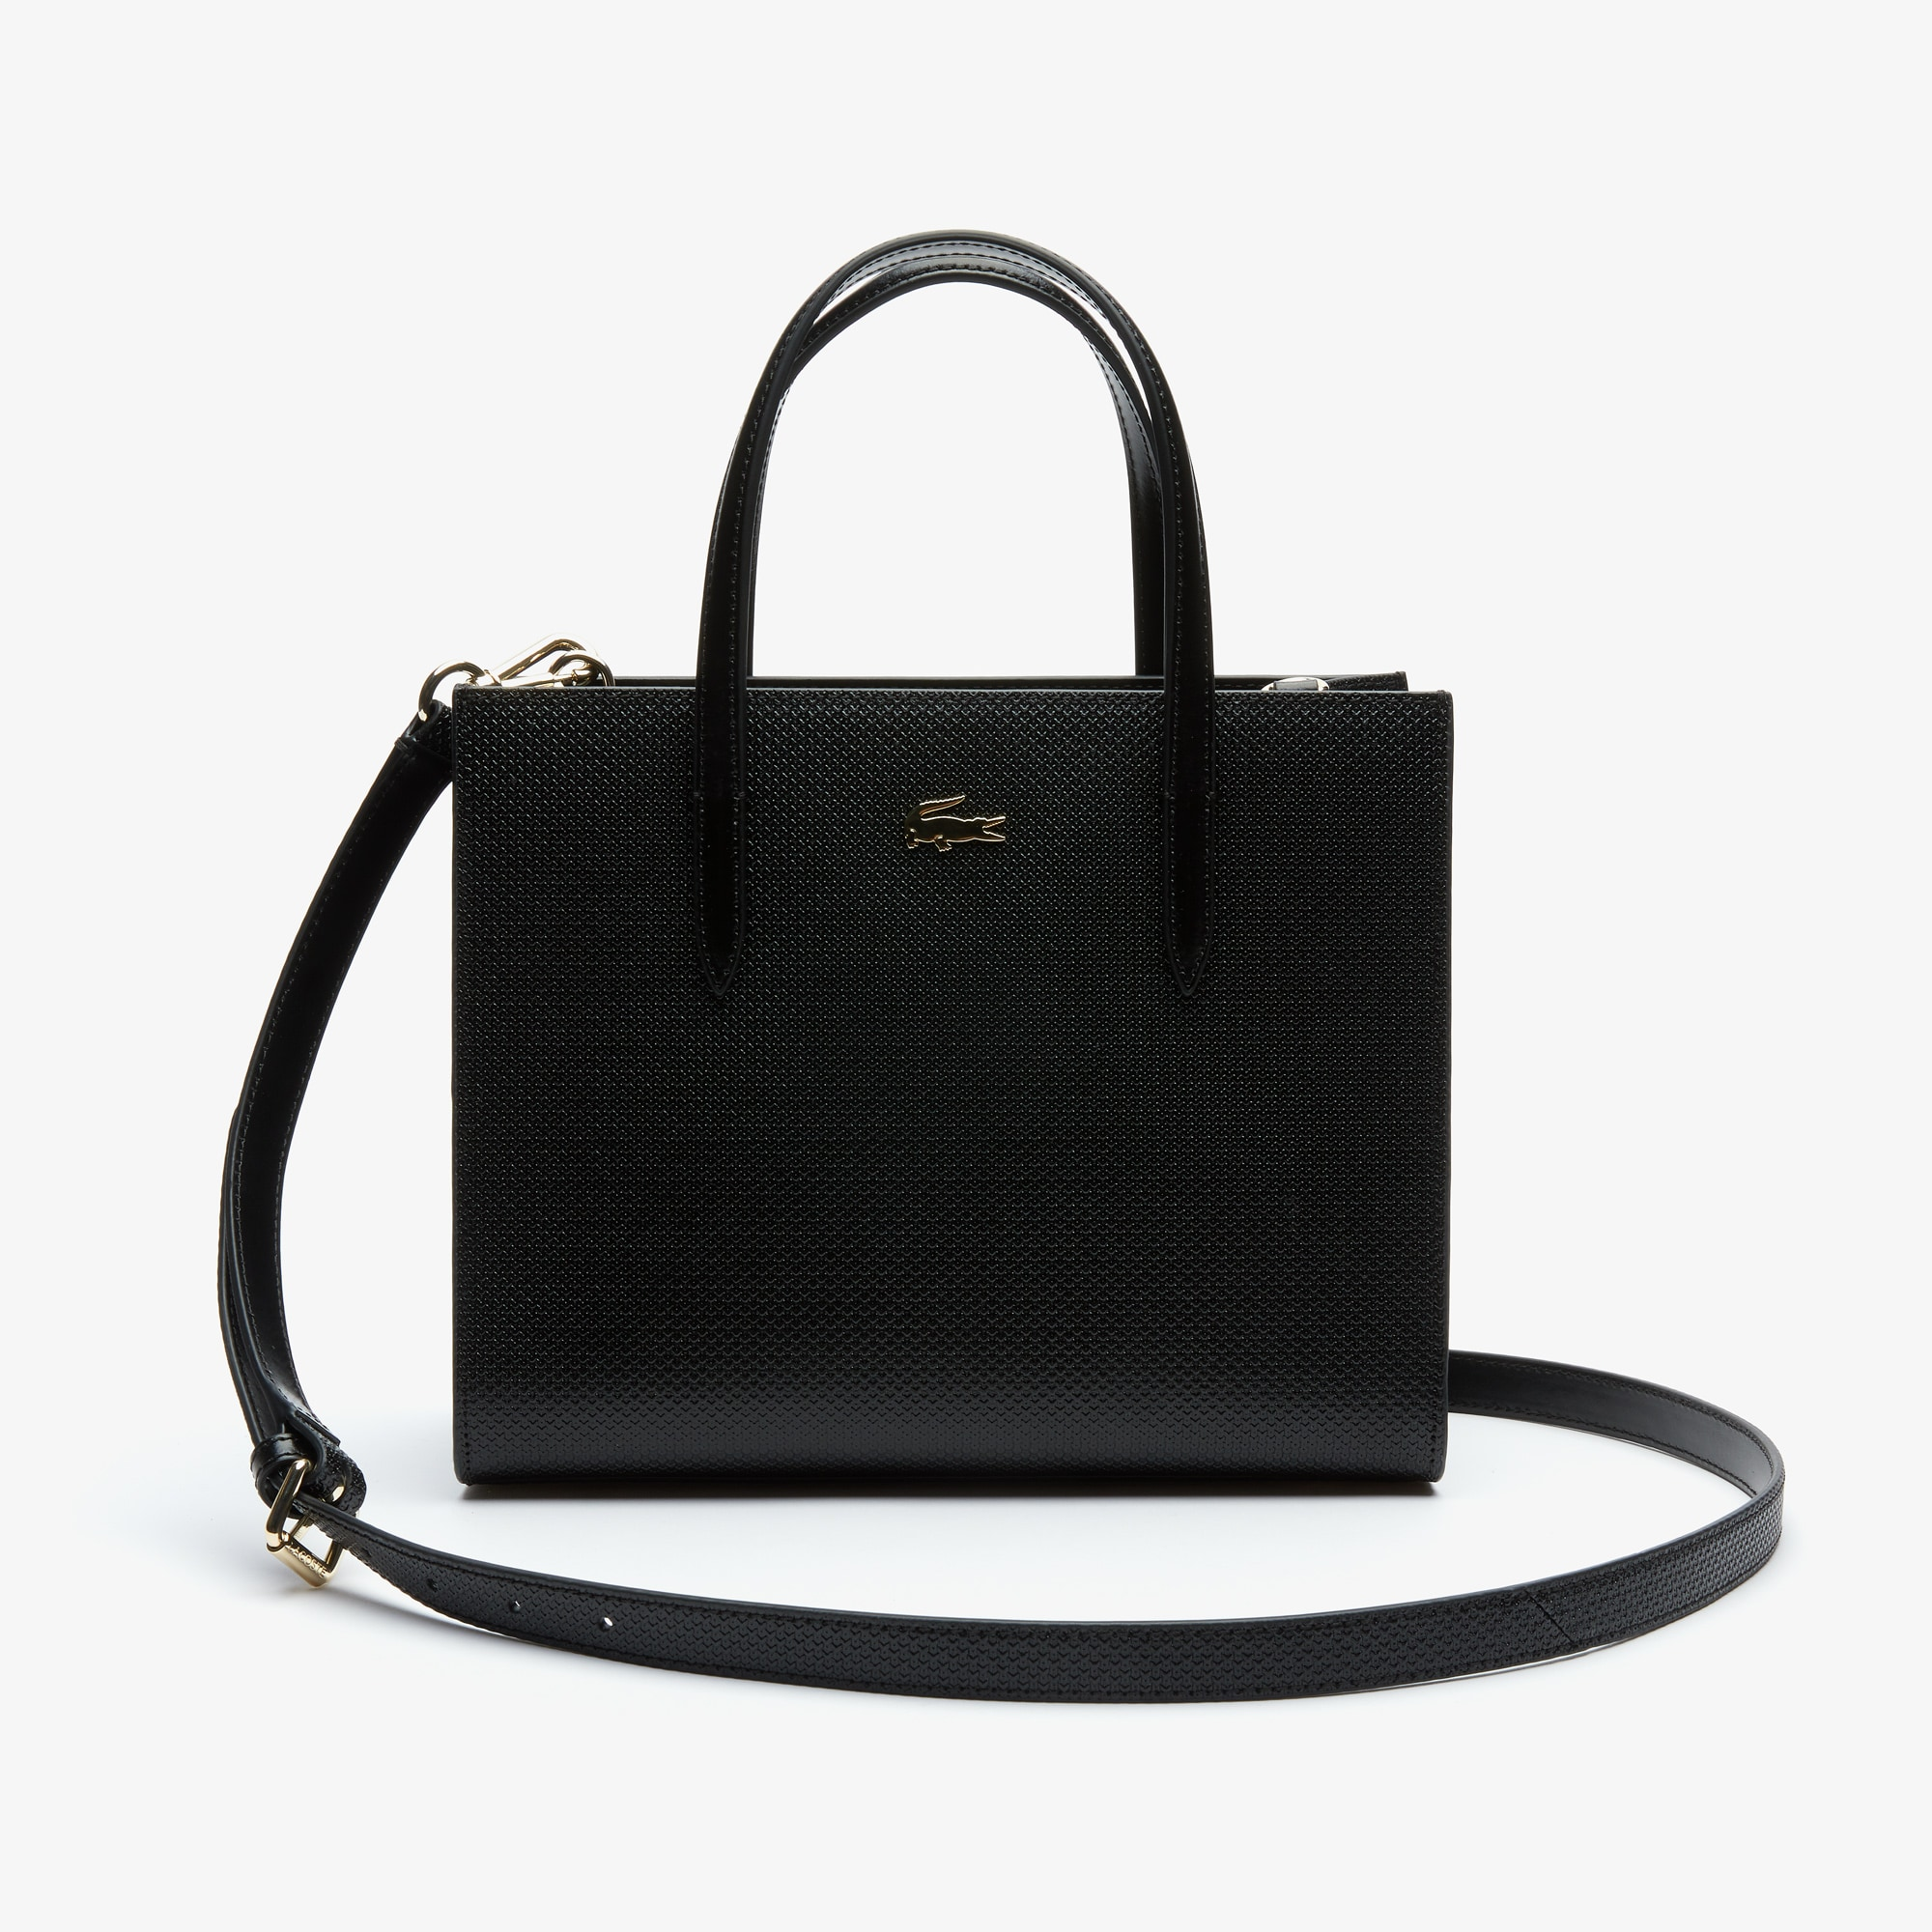 d838fe2895 Purses and Handbags |Clutches and Totes | LACOSTE